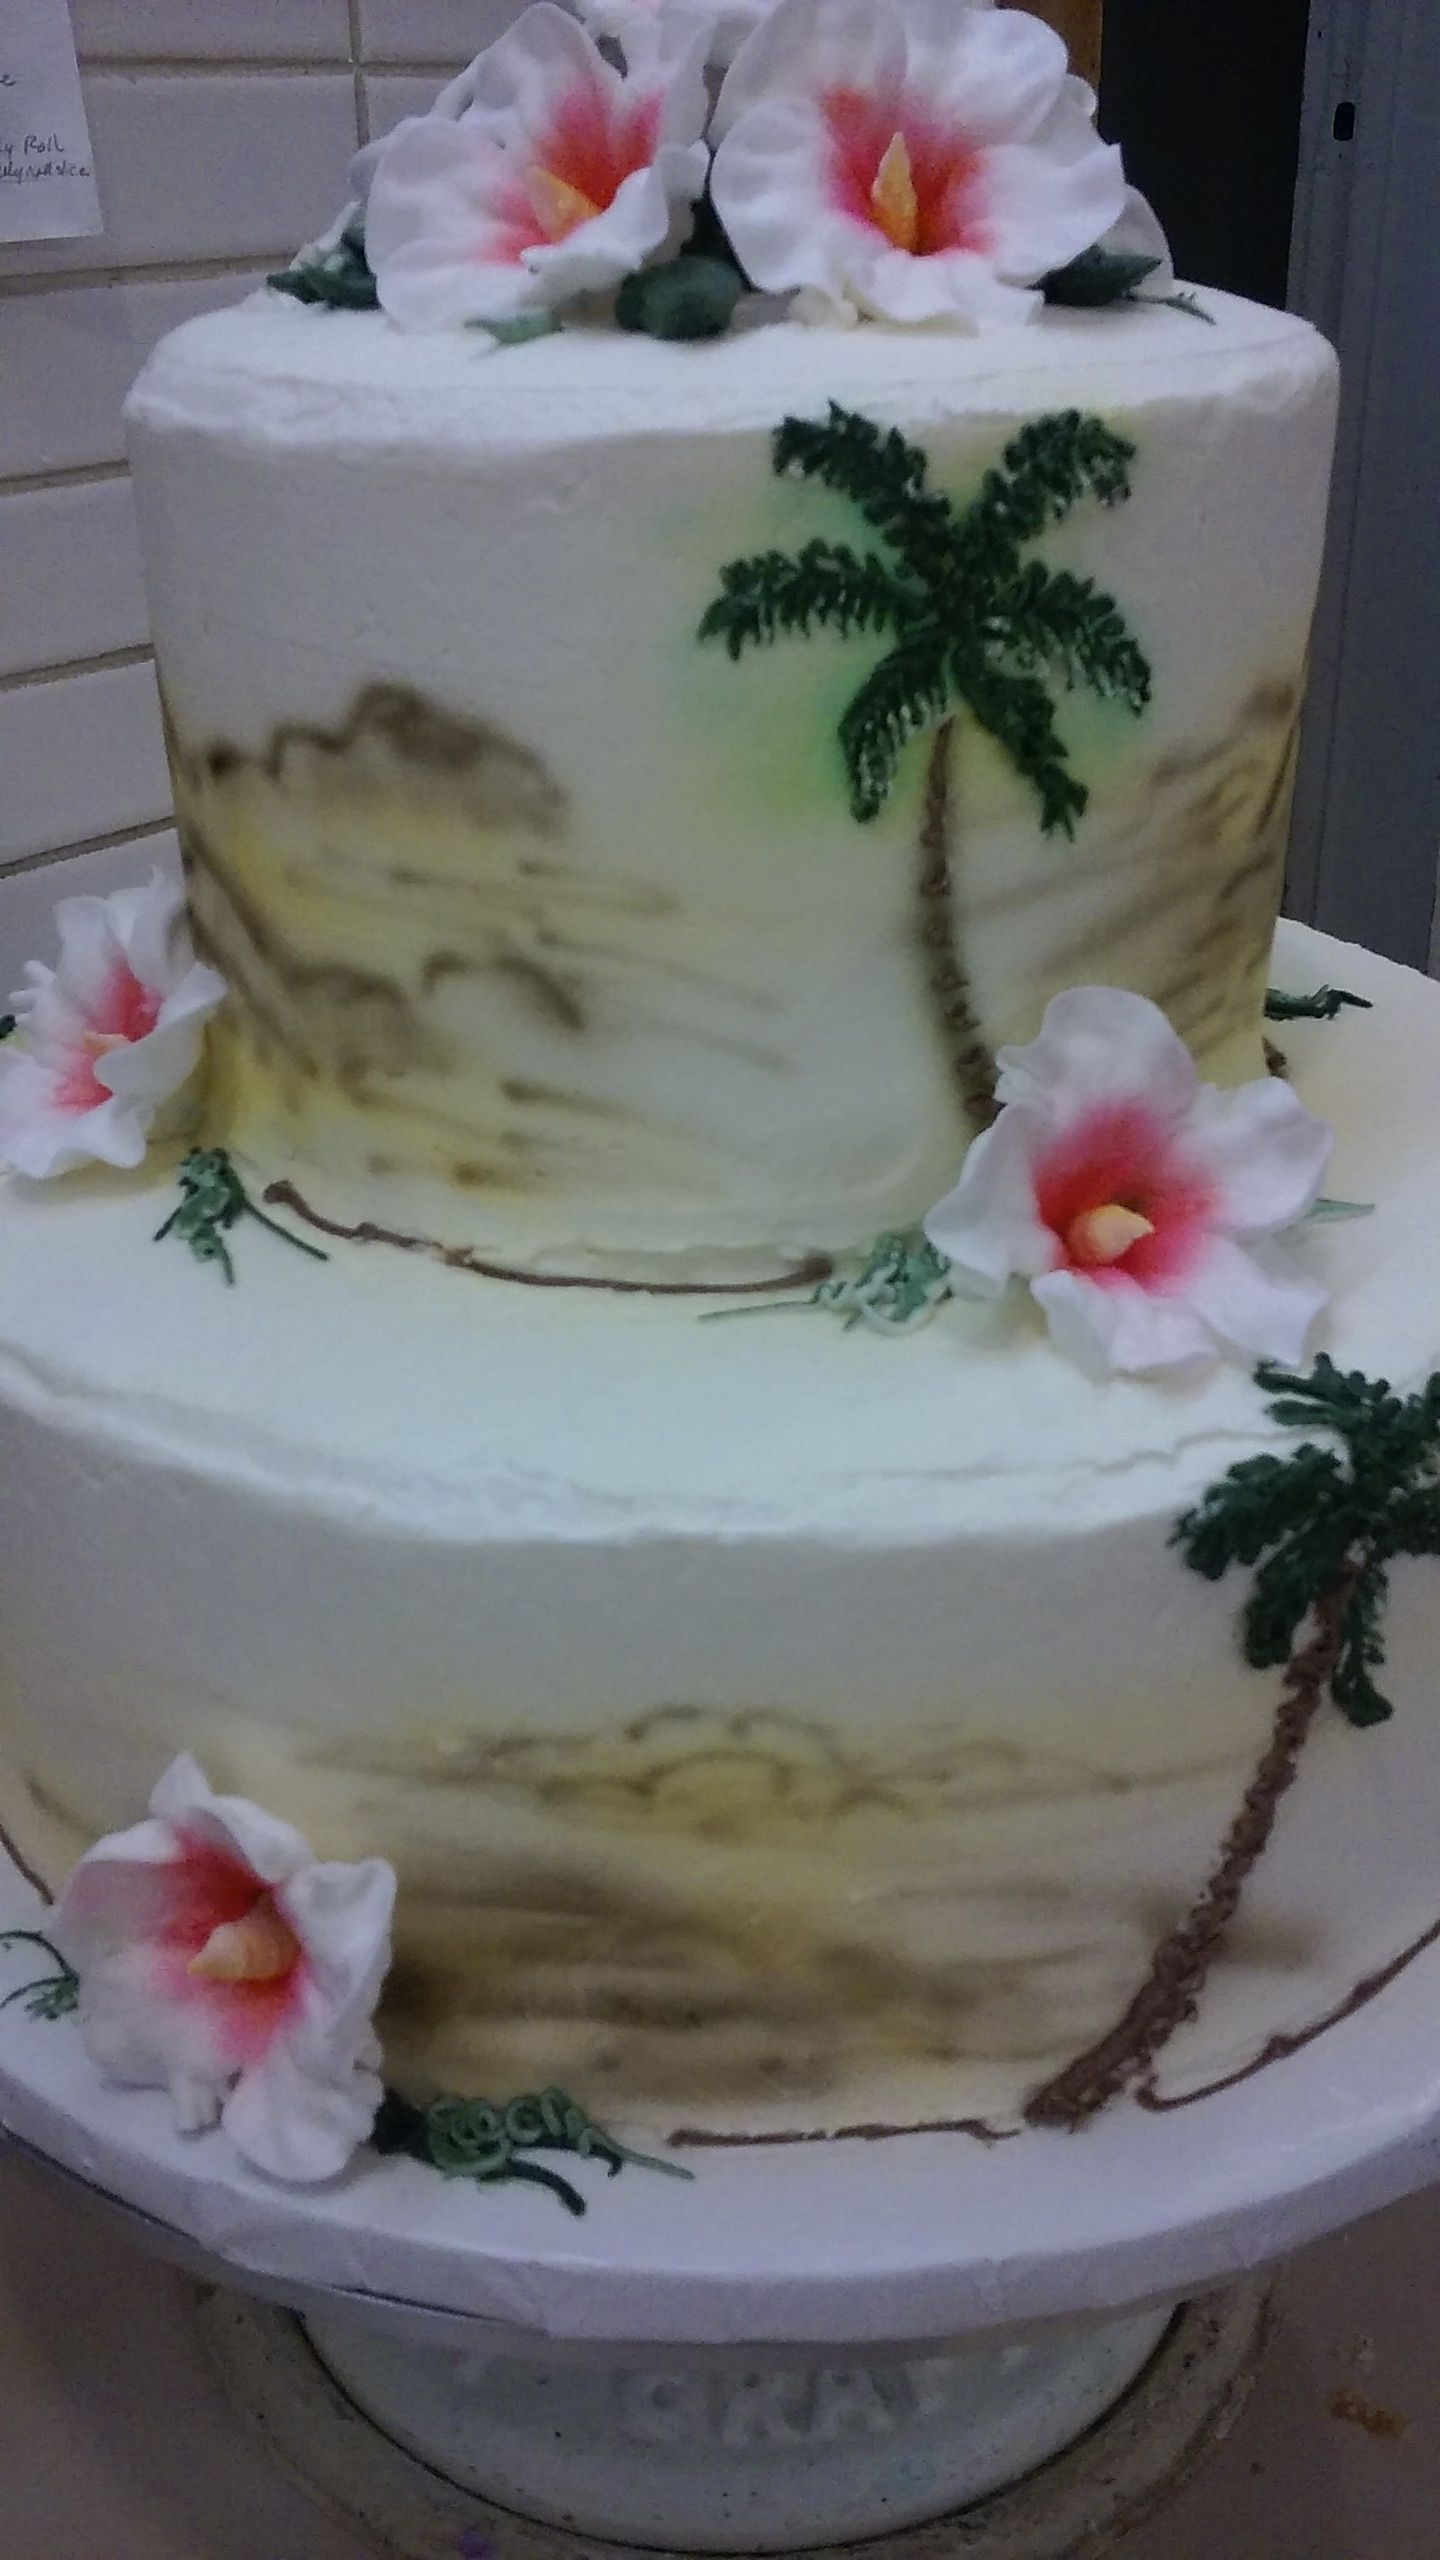 hawaiian wedding cake designs hawaiian shirt design on wedding cake angela hodgkins 15110